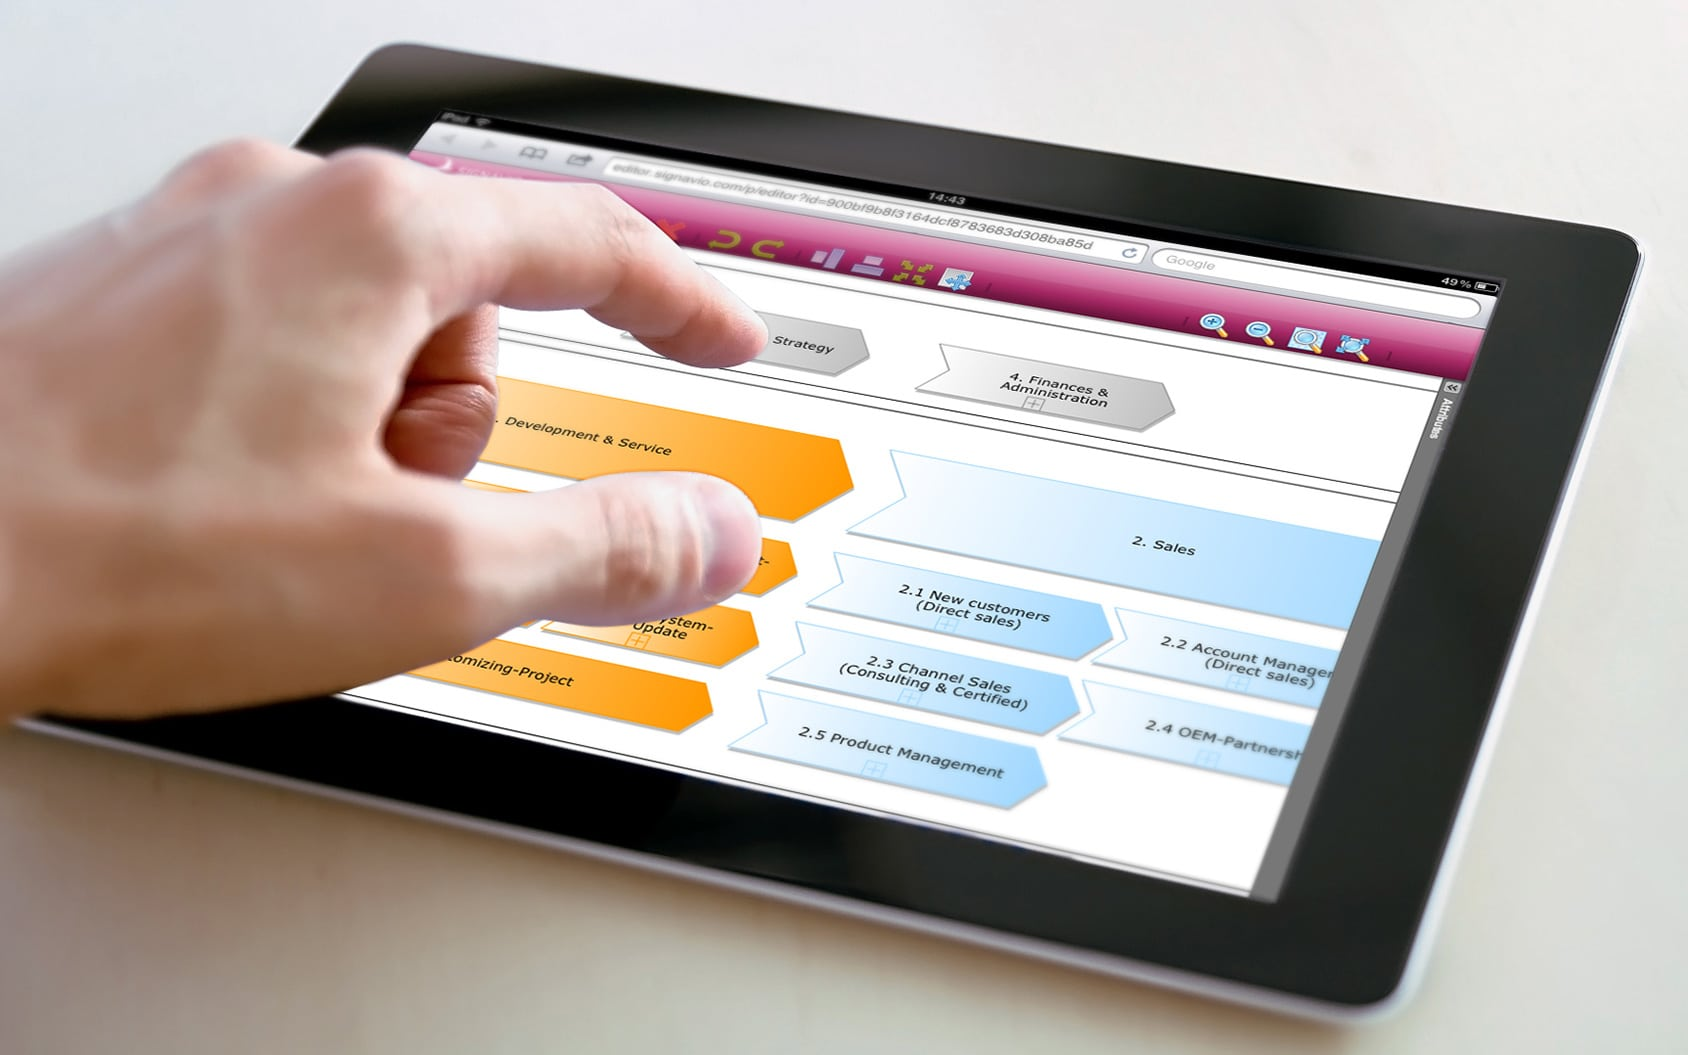 Signavio Process Analysis made easy at the tablet